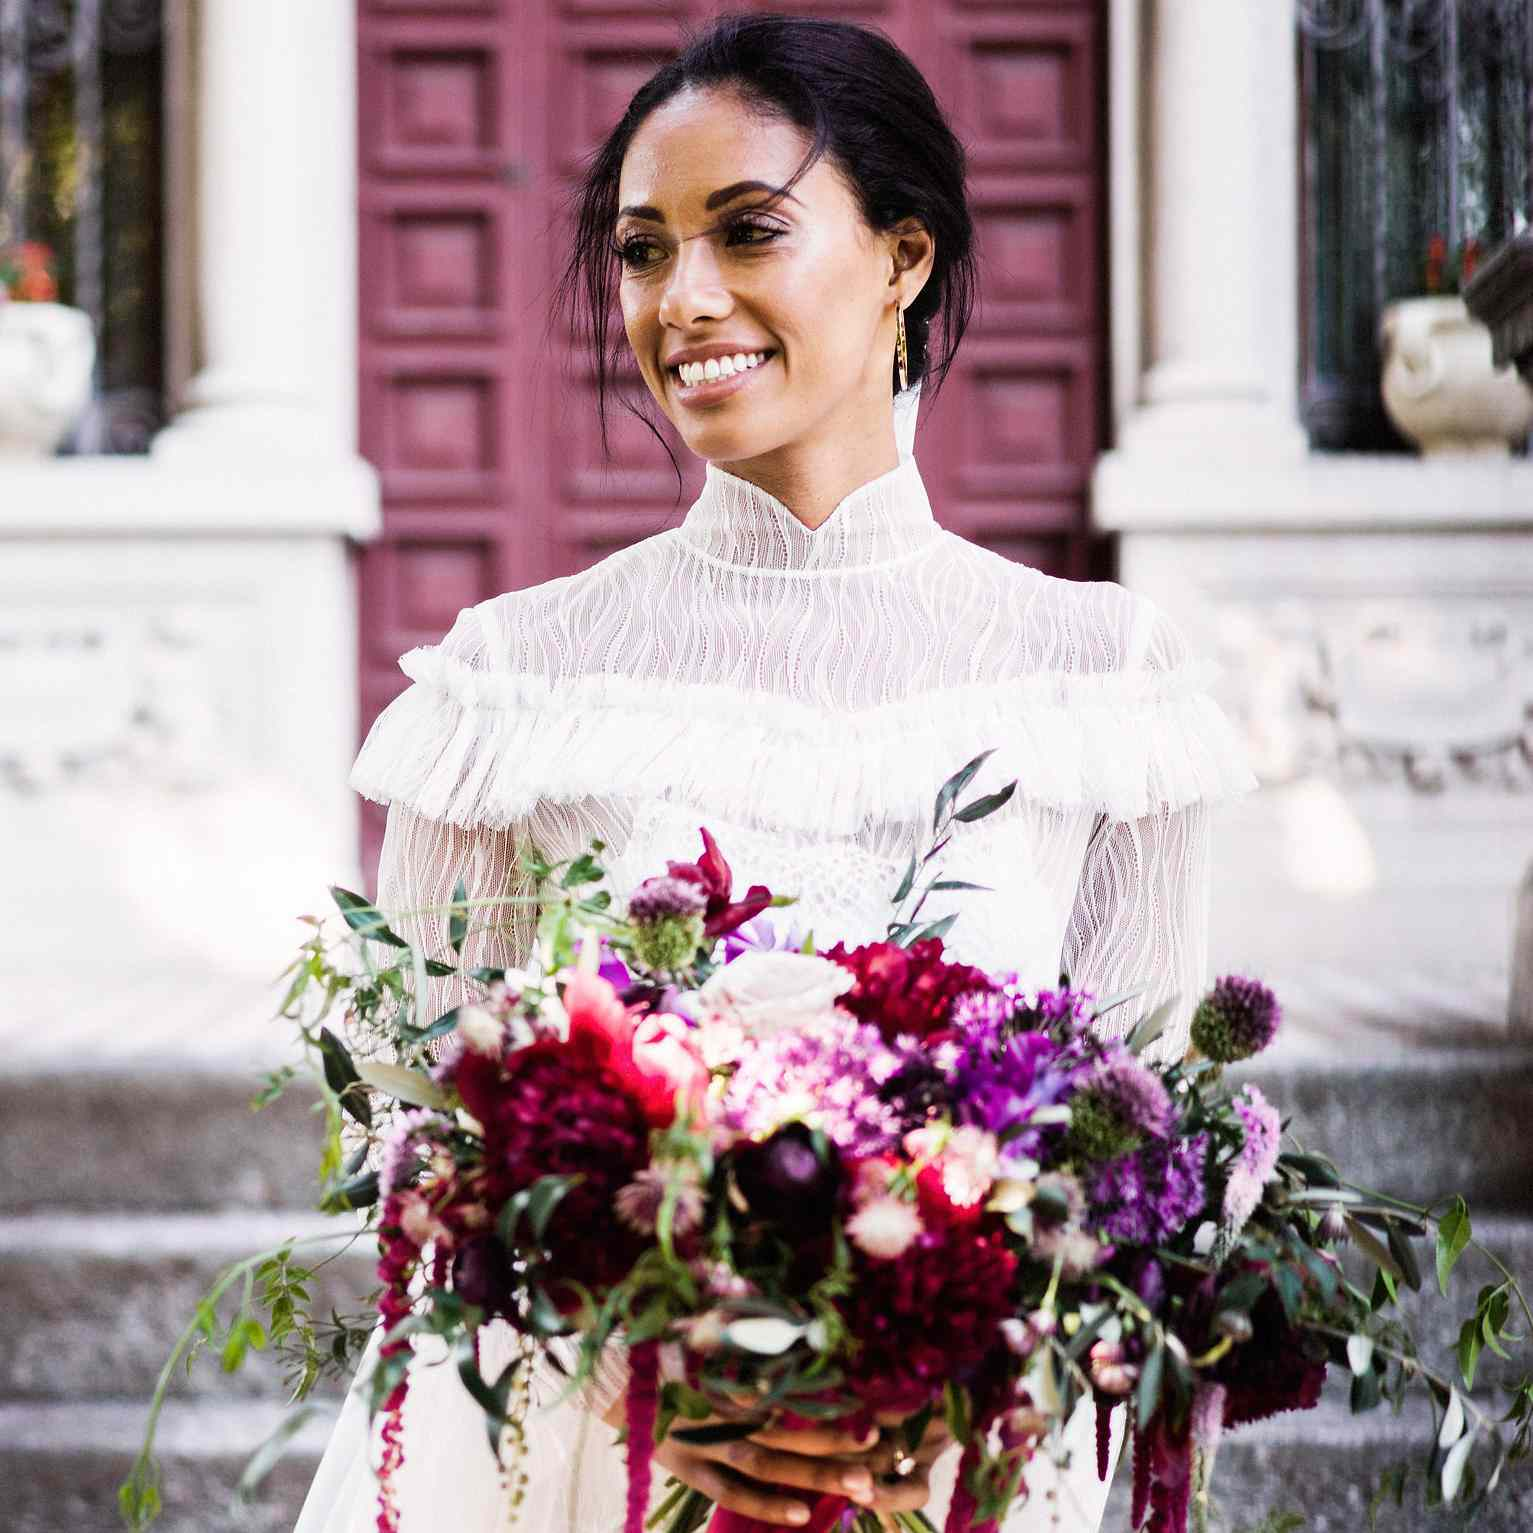 Wedding Flowers For Winter: 11 Gorgeous Winter Wedding Bouquets